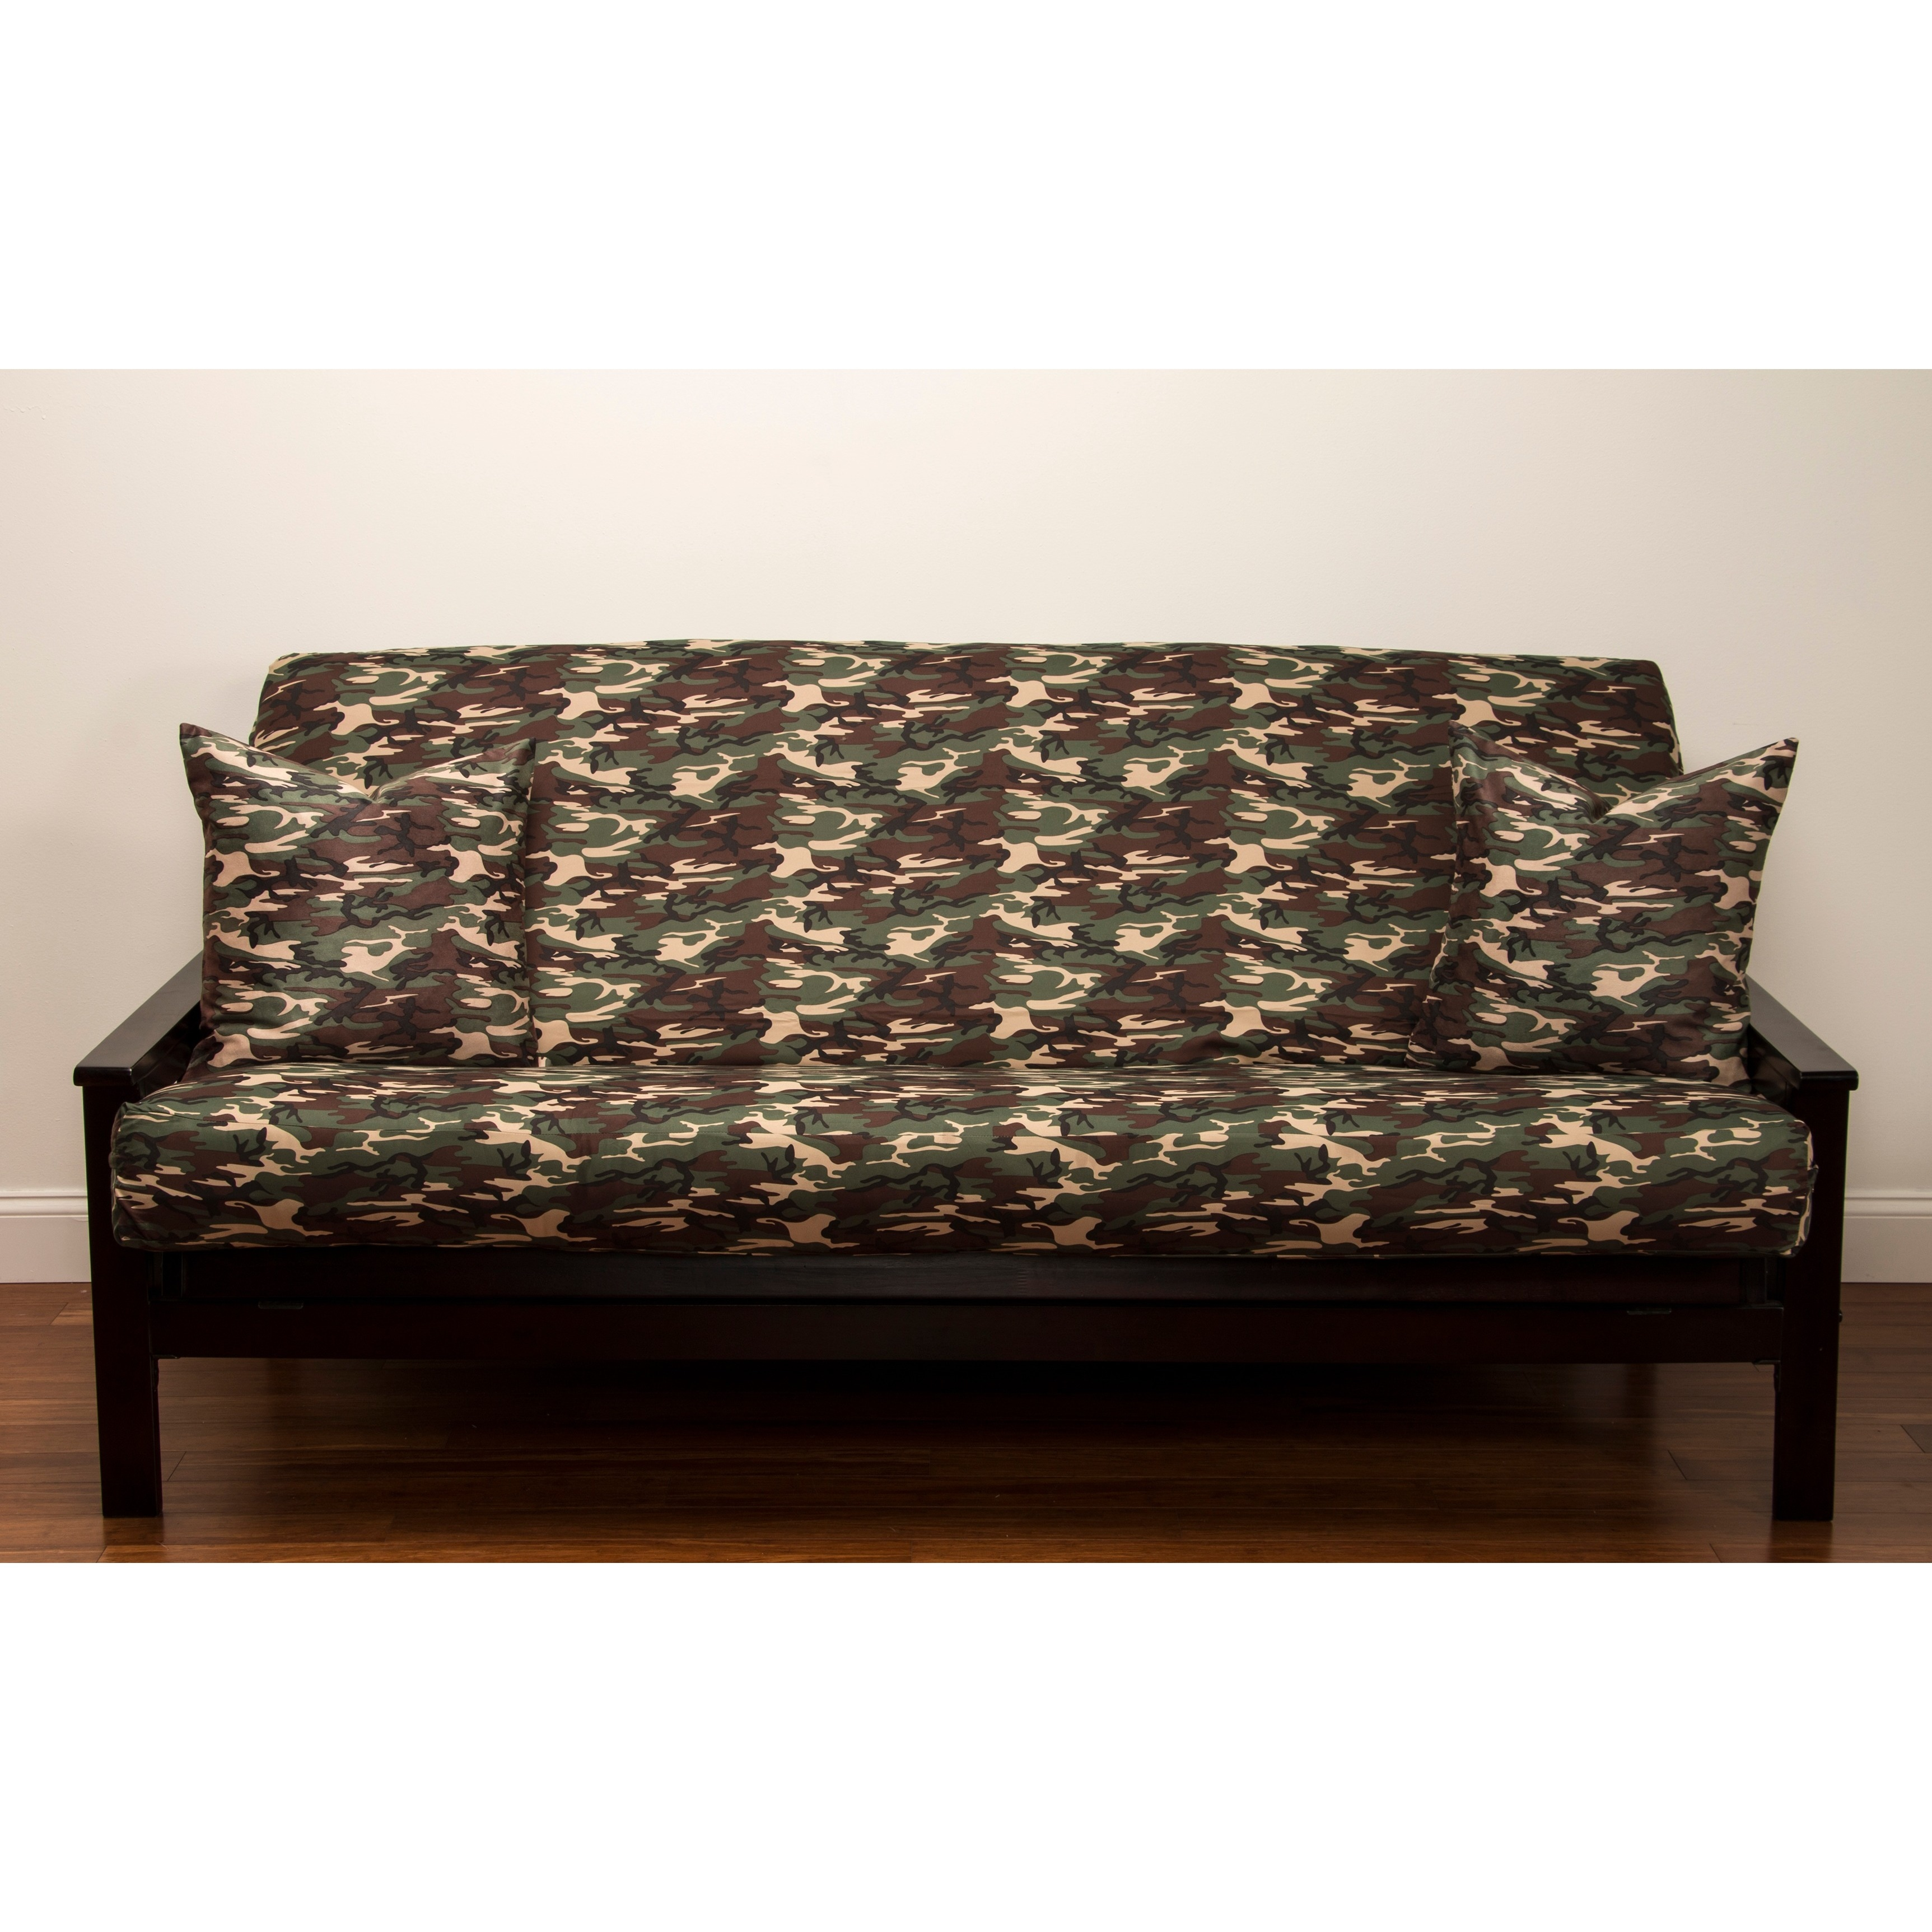 SIScovers Galaxy Camo 7-inch Deep Full-size Futon Cover - Full